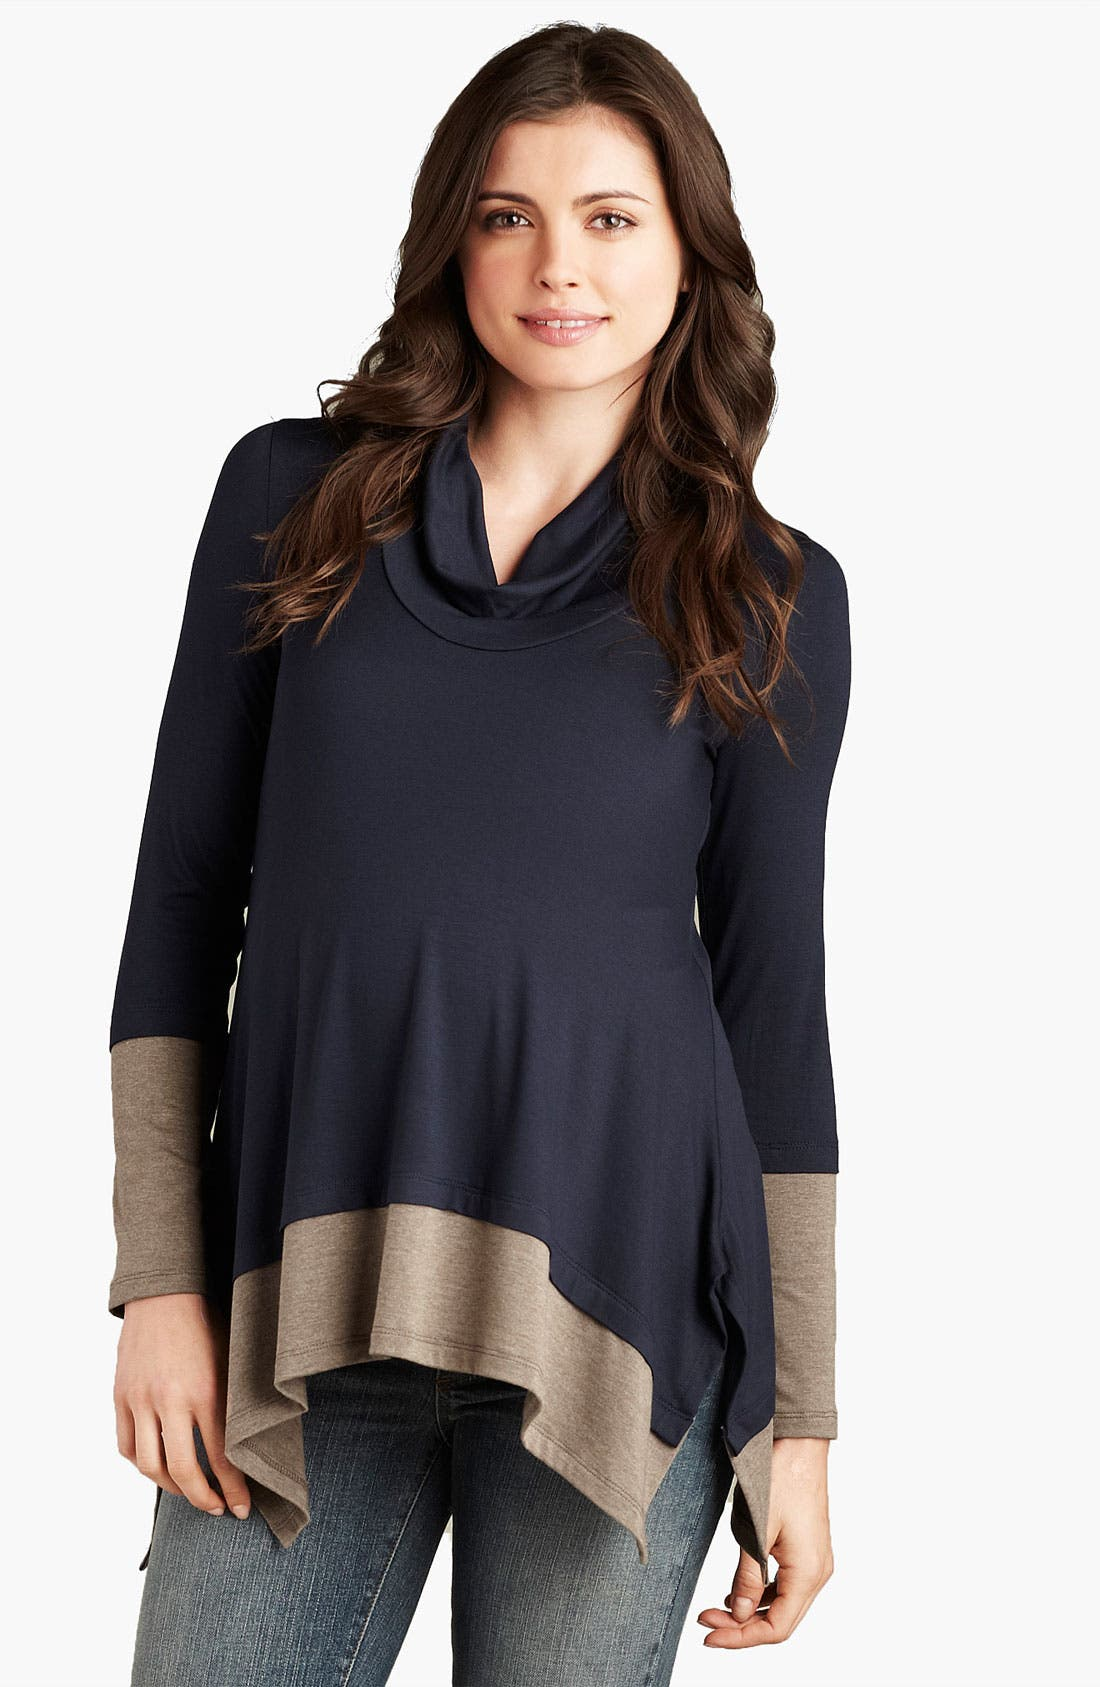 Alternate Image 1 Selected - Maternal America Maternity Cowl Neck Layered Top